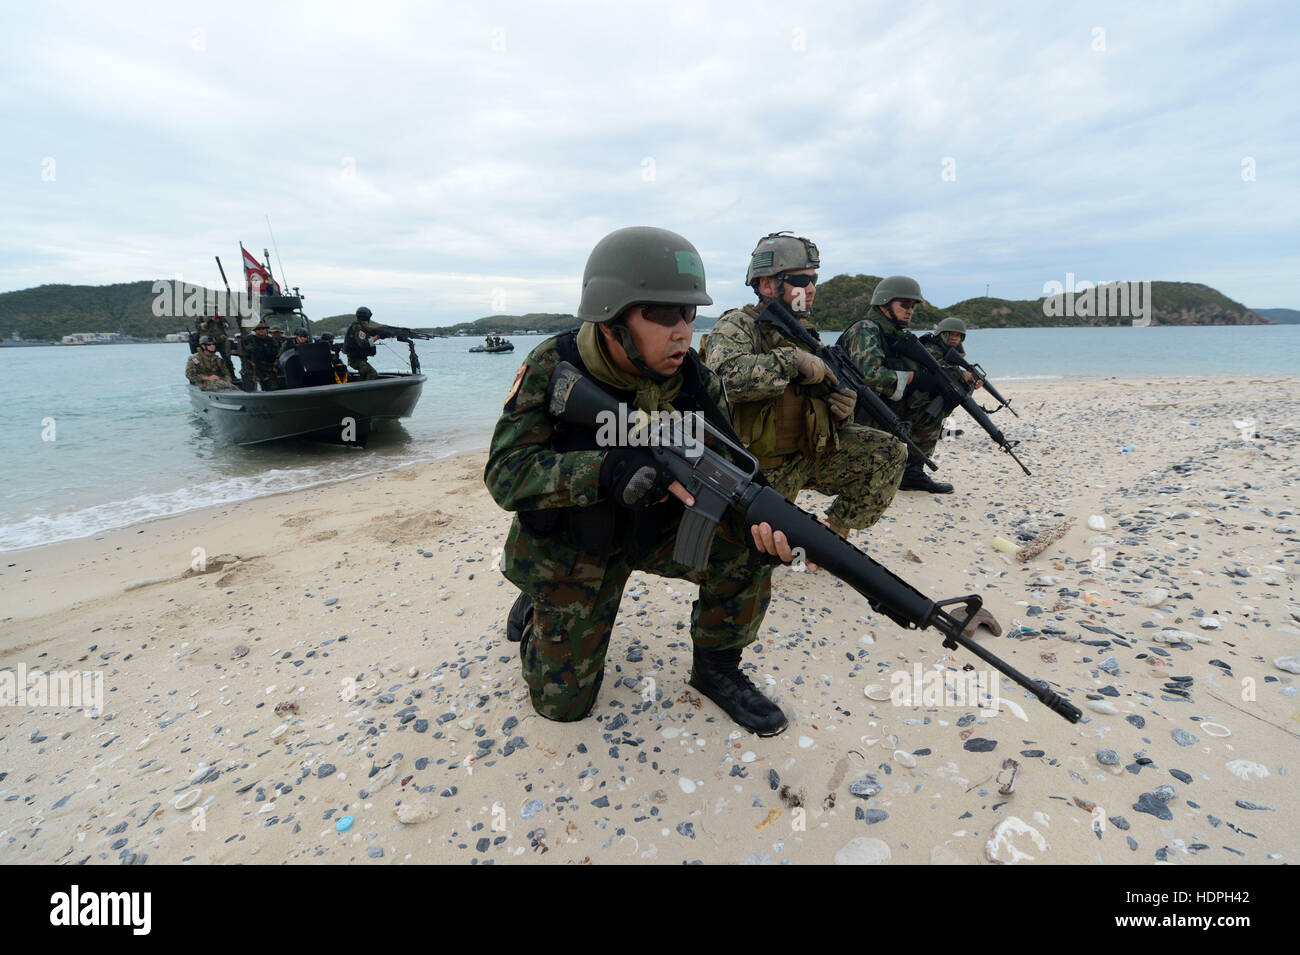 U.S. and Thai soldiers and sailors train on the beach during a Cooperation Afloat Readiness and Training exercise - Stock Image